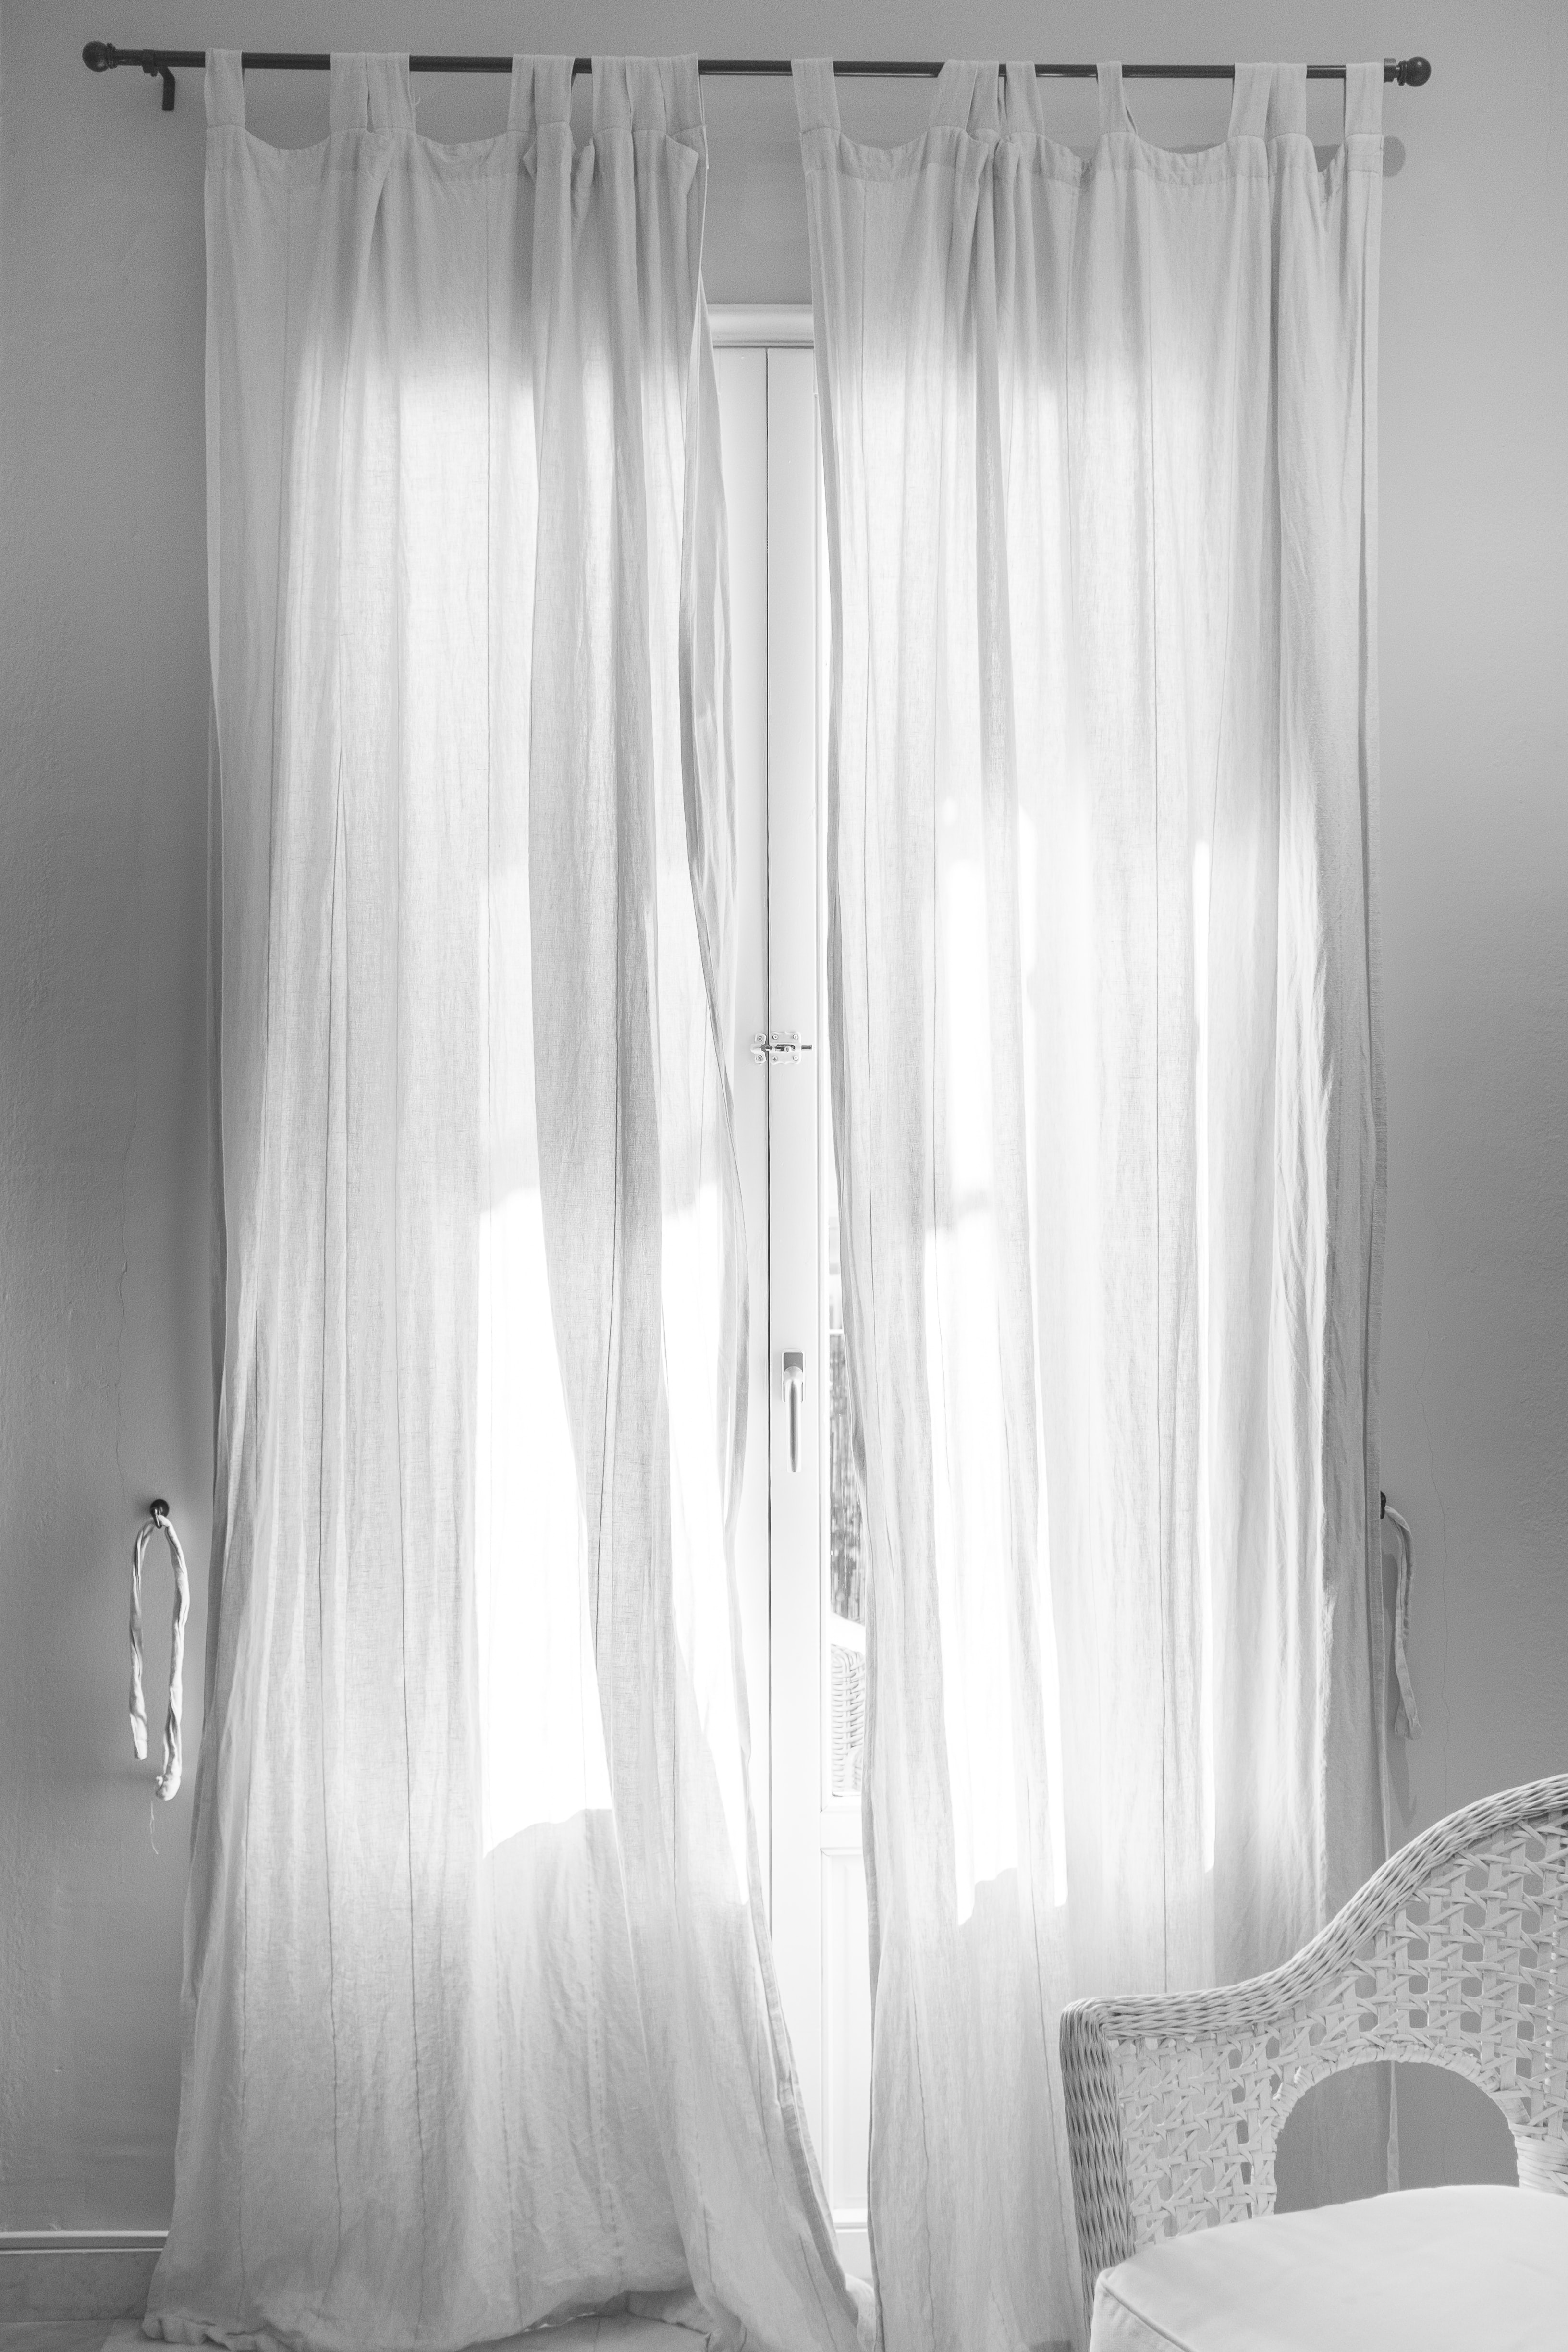 White Window Curtain Hanging On Black Steel Rod Photo Free Chair Image On Unsplash